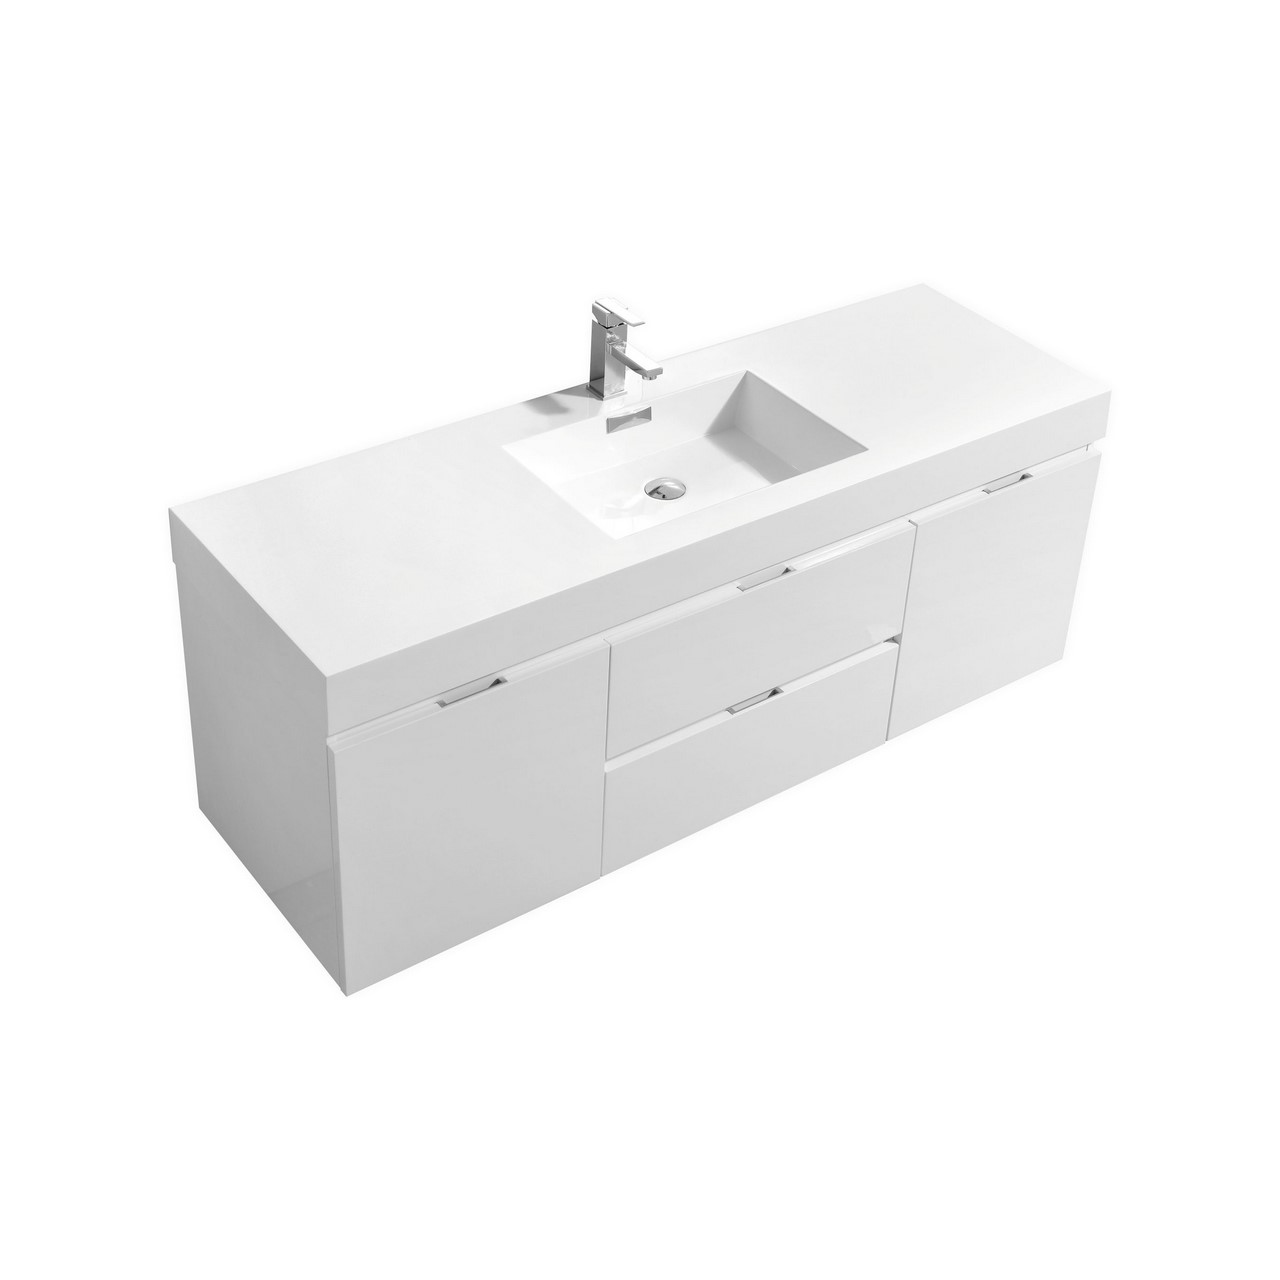 Bliss 60 high gloss white wall mount single sink vanity 60 in bathroom vanities with single sink